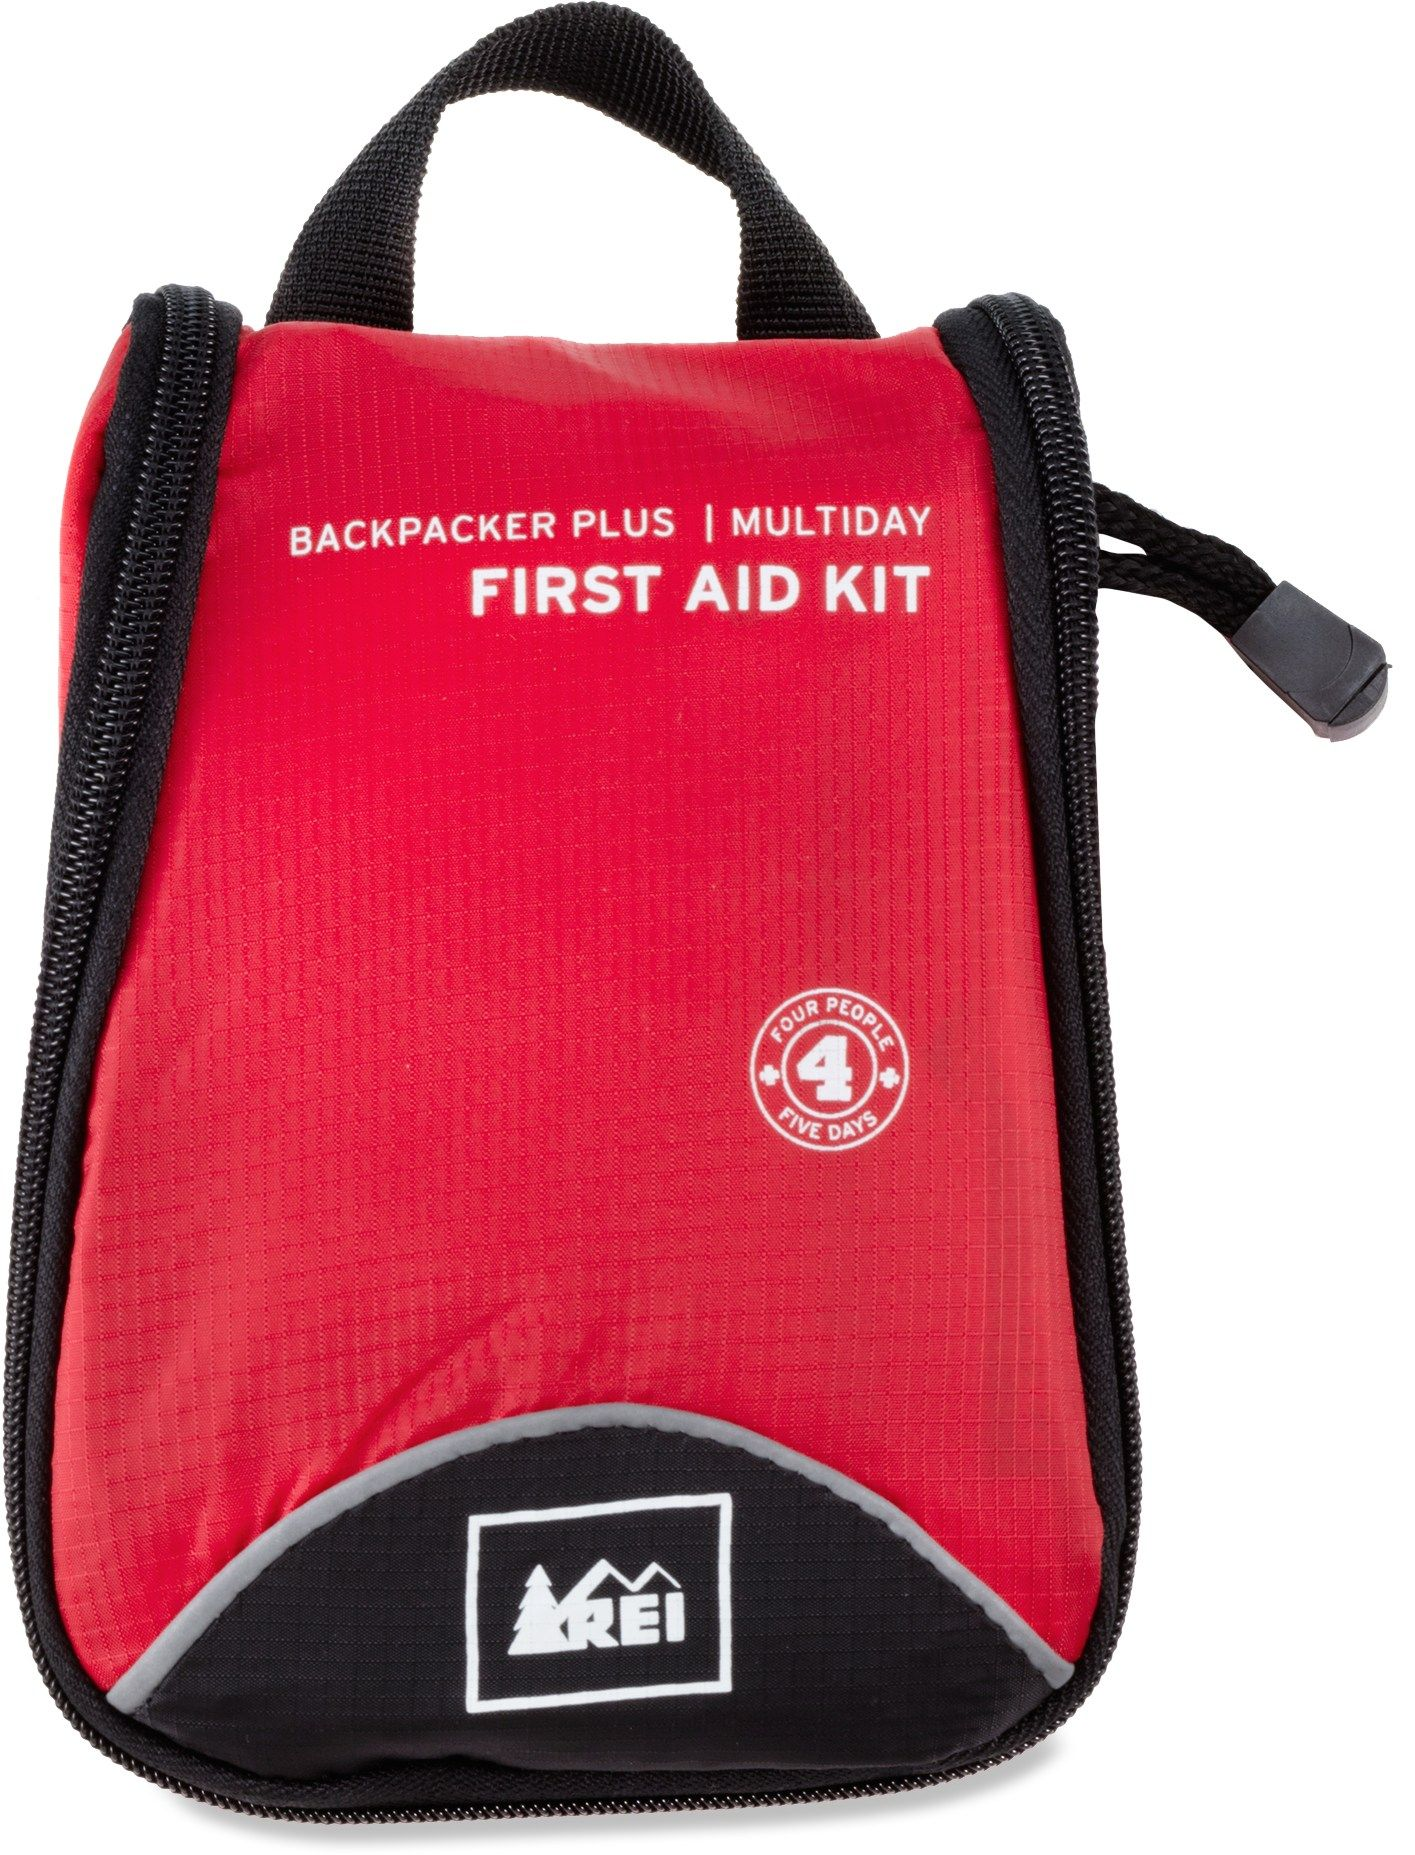 d77dfb2170b REI Backpacker Plus Multiday First-Aid Kit   Hiking, Camping and ...